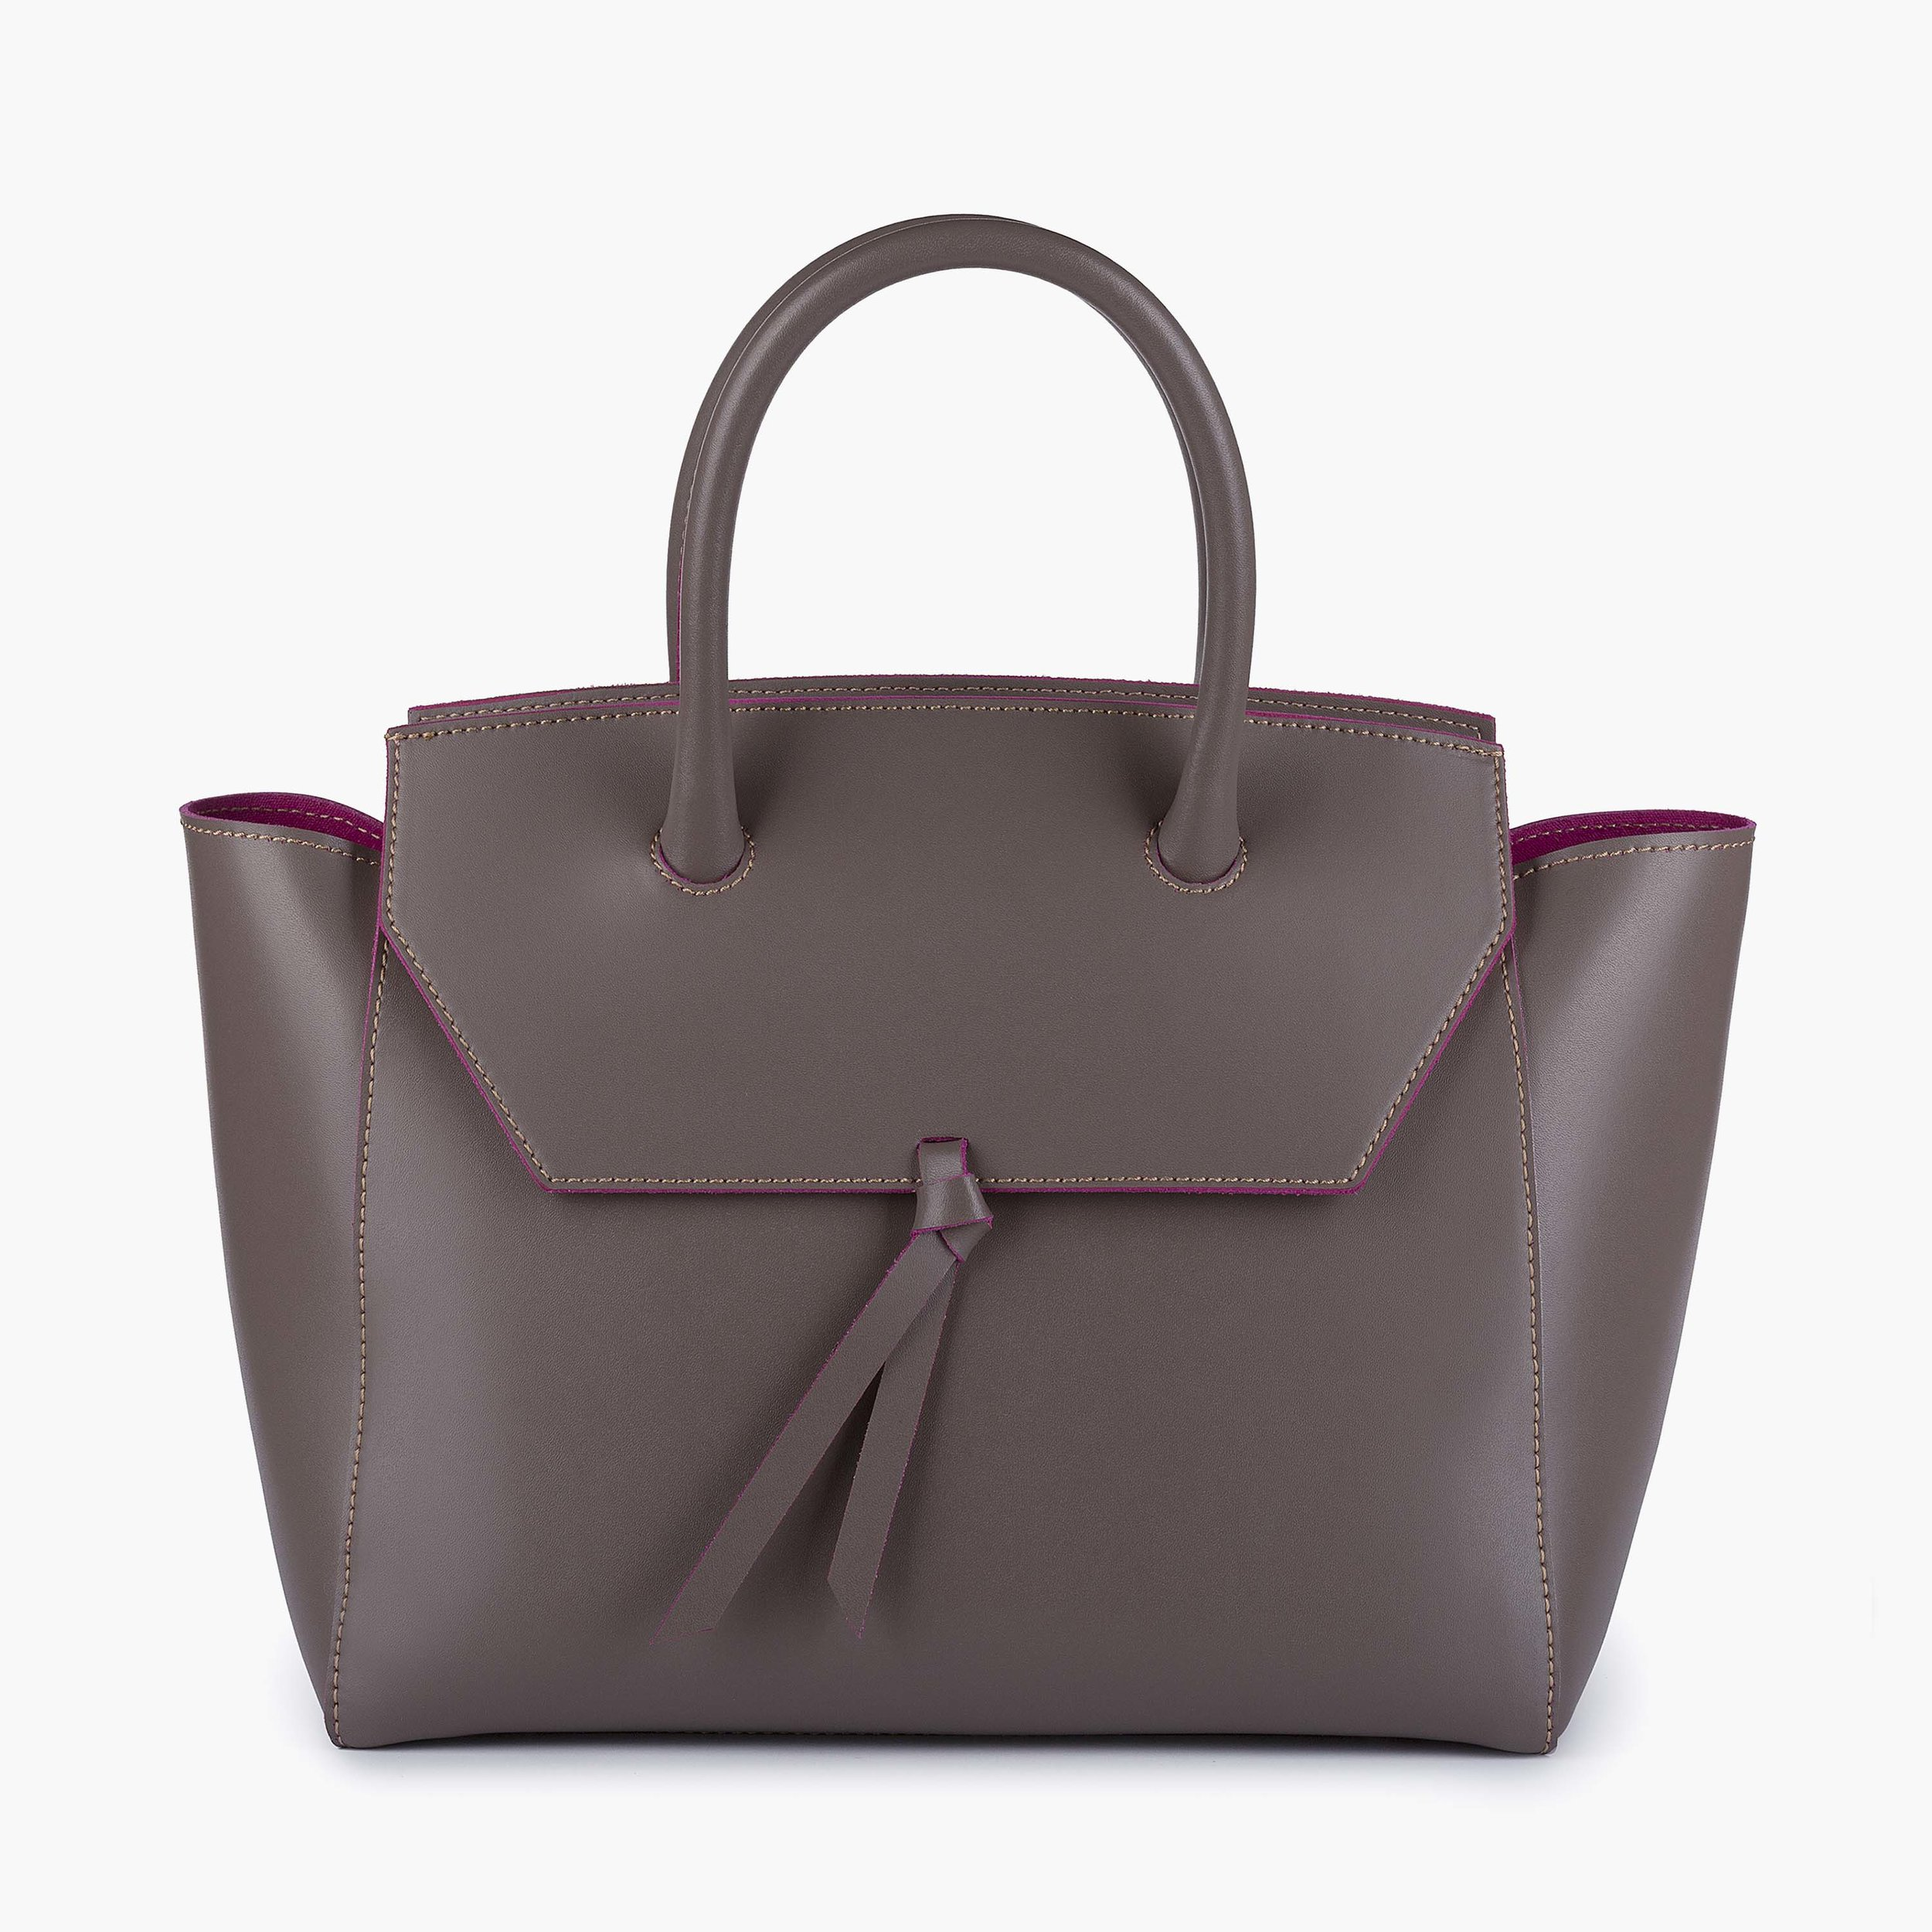 The Midi Loren Tote in Taupe.